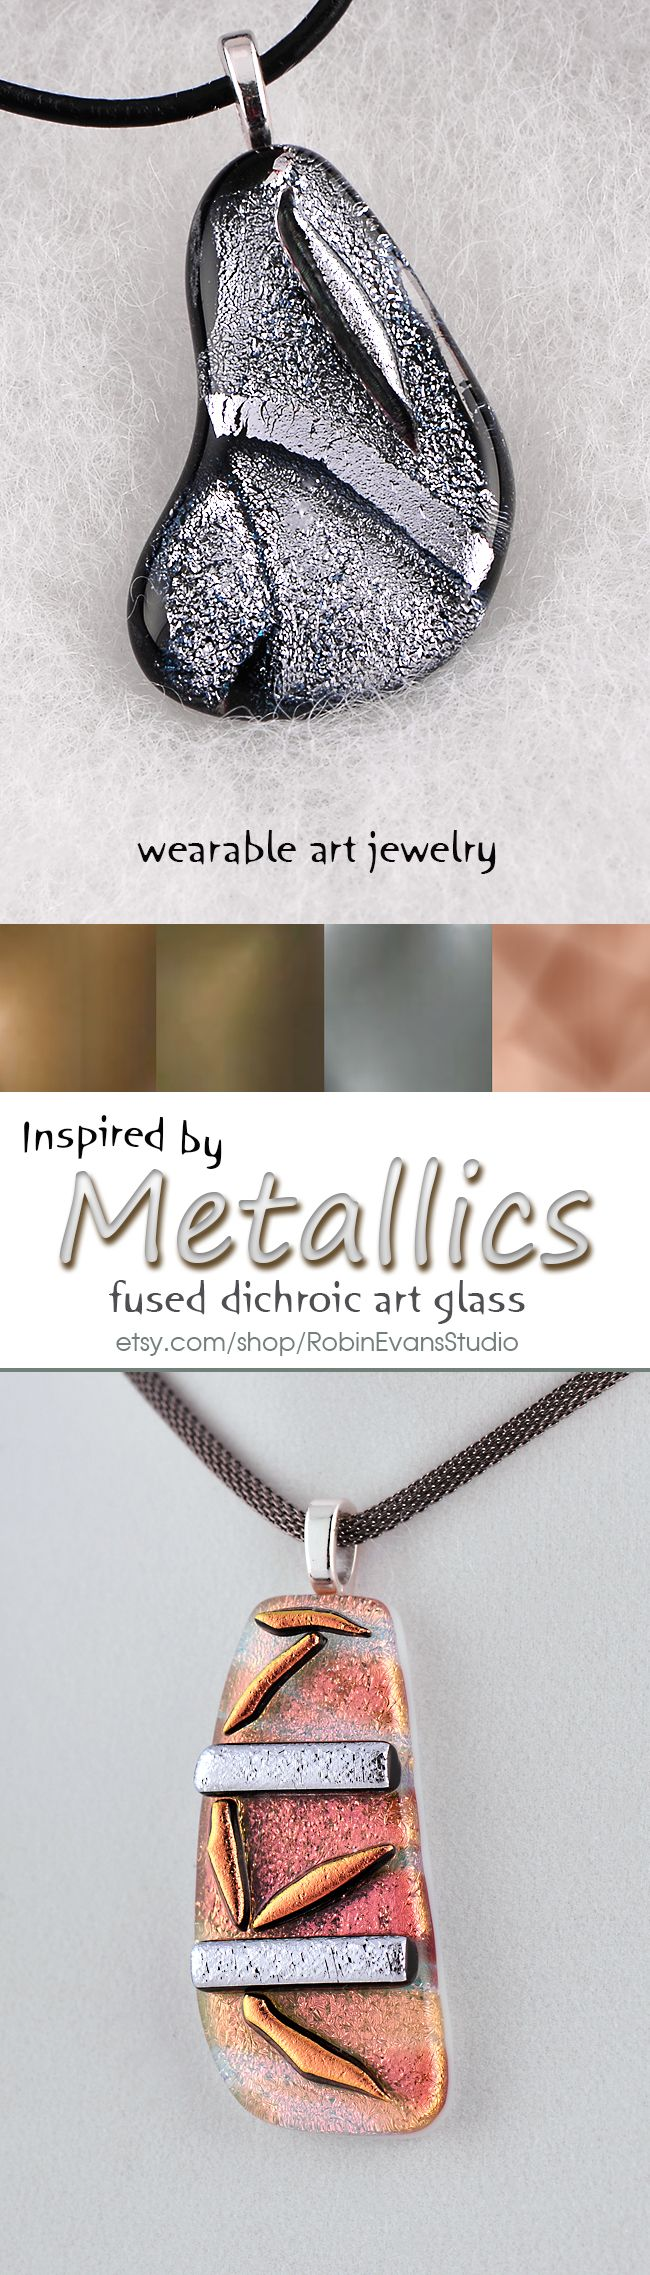 ~~Mad for Metallics! The right metallic accessories can take an outfit right to on trend without being over the top. Up your glam this summer by easily adding affordable accessories to your look. If you normally associate sparkle solely with evening, a small splash of shimmer keeps your look daytime appropriate. The BIG news now, shine anytime and enjoy metallics as your new neutral. My fused dichroic glass wearable art jewelry will take an outfit straight to shiny heaven | Robin Evans…